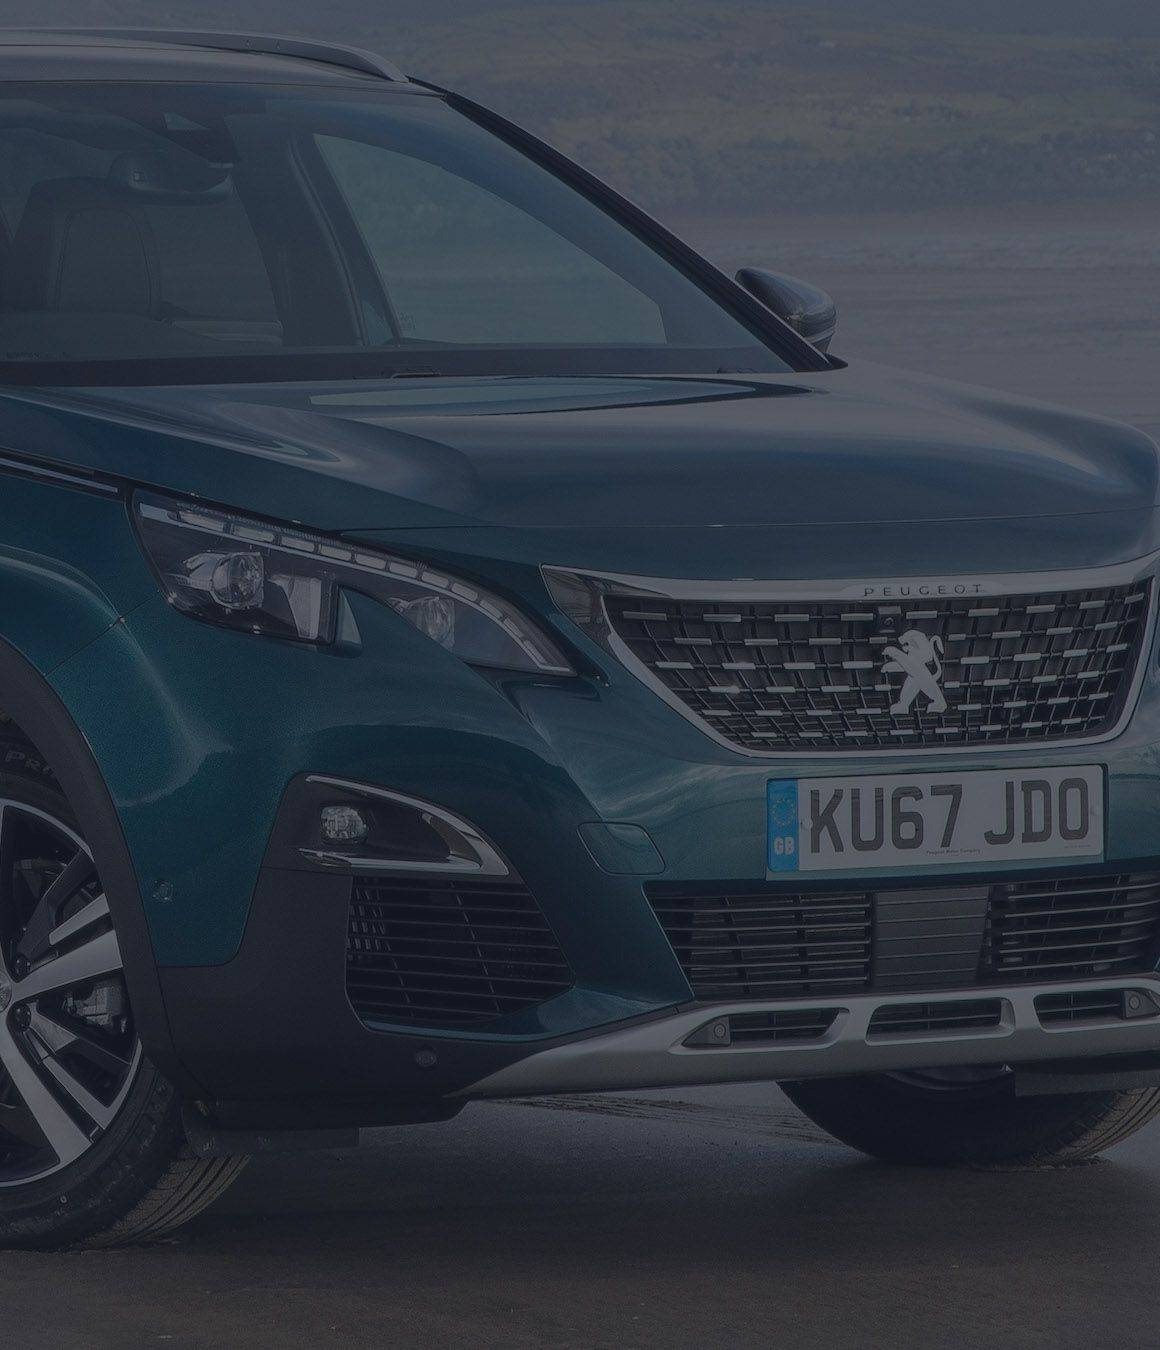 Compare Peugeot insurance costs for all models